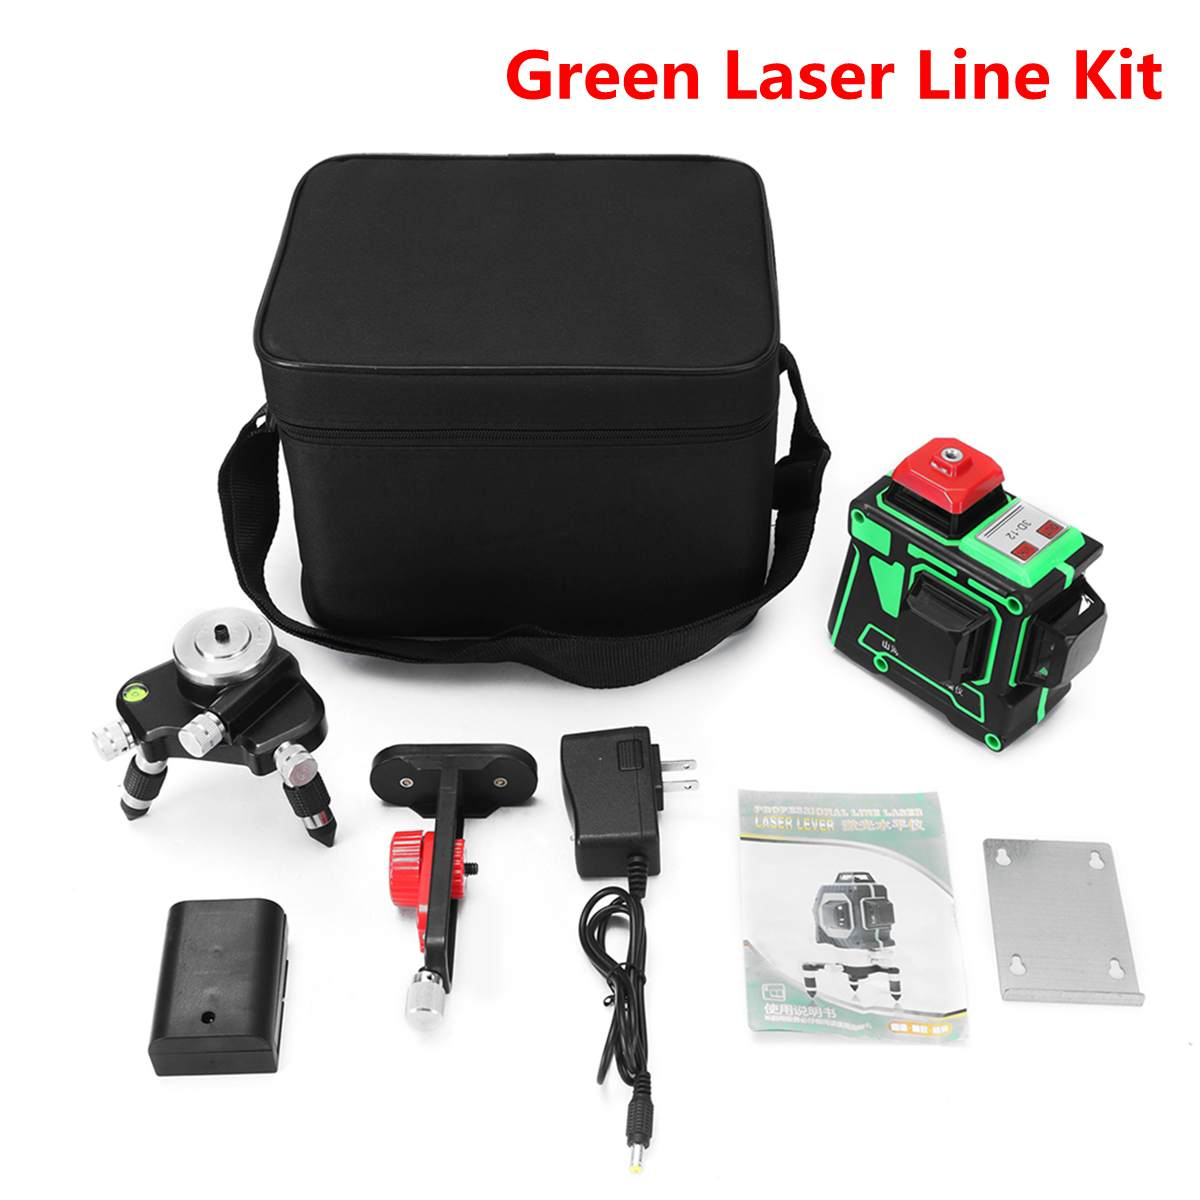 ZEAST Precision Laser Level 12 Lines 3D Green Laser Self Leveling 360 Degree Horizontal & Vertical Cross Waterproof AC 100-240V